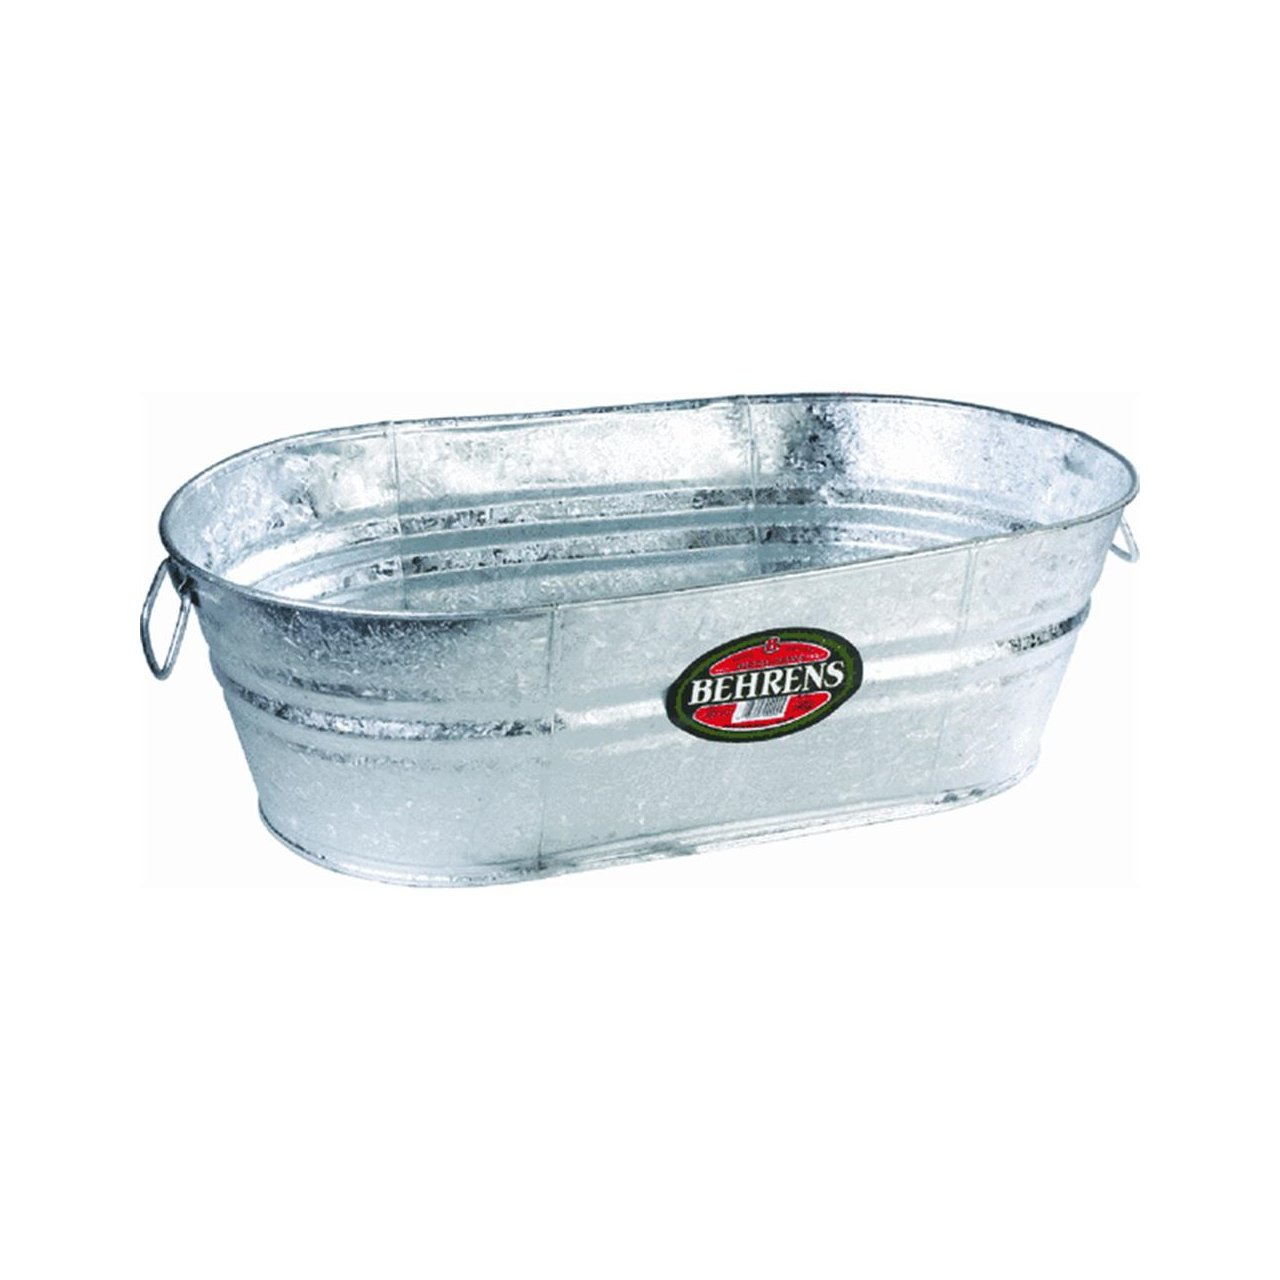 beverage oval photo beer party drinks metal tub cooler bucket stand of stainless bulk plastic galvanized red ice galvanised for steel with large hervoice tubs